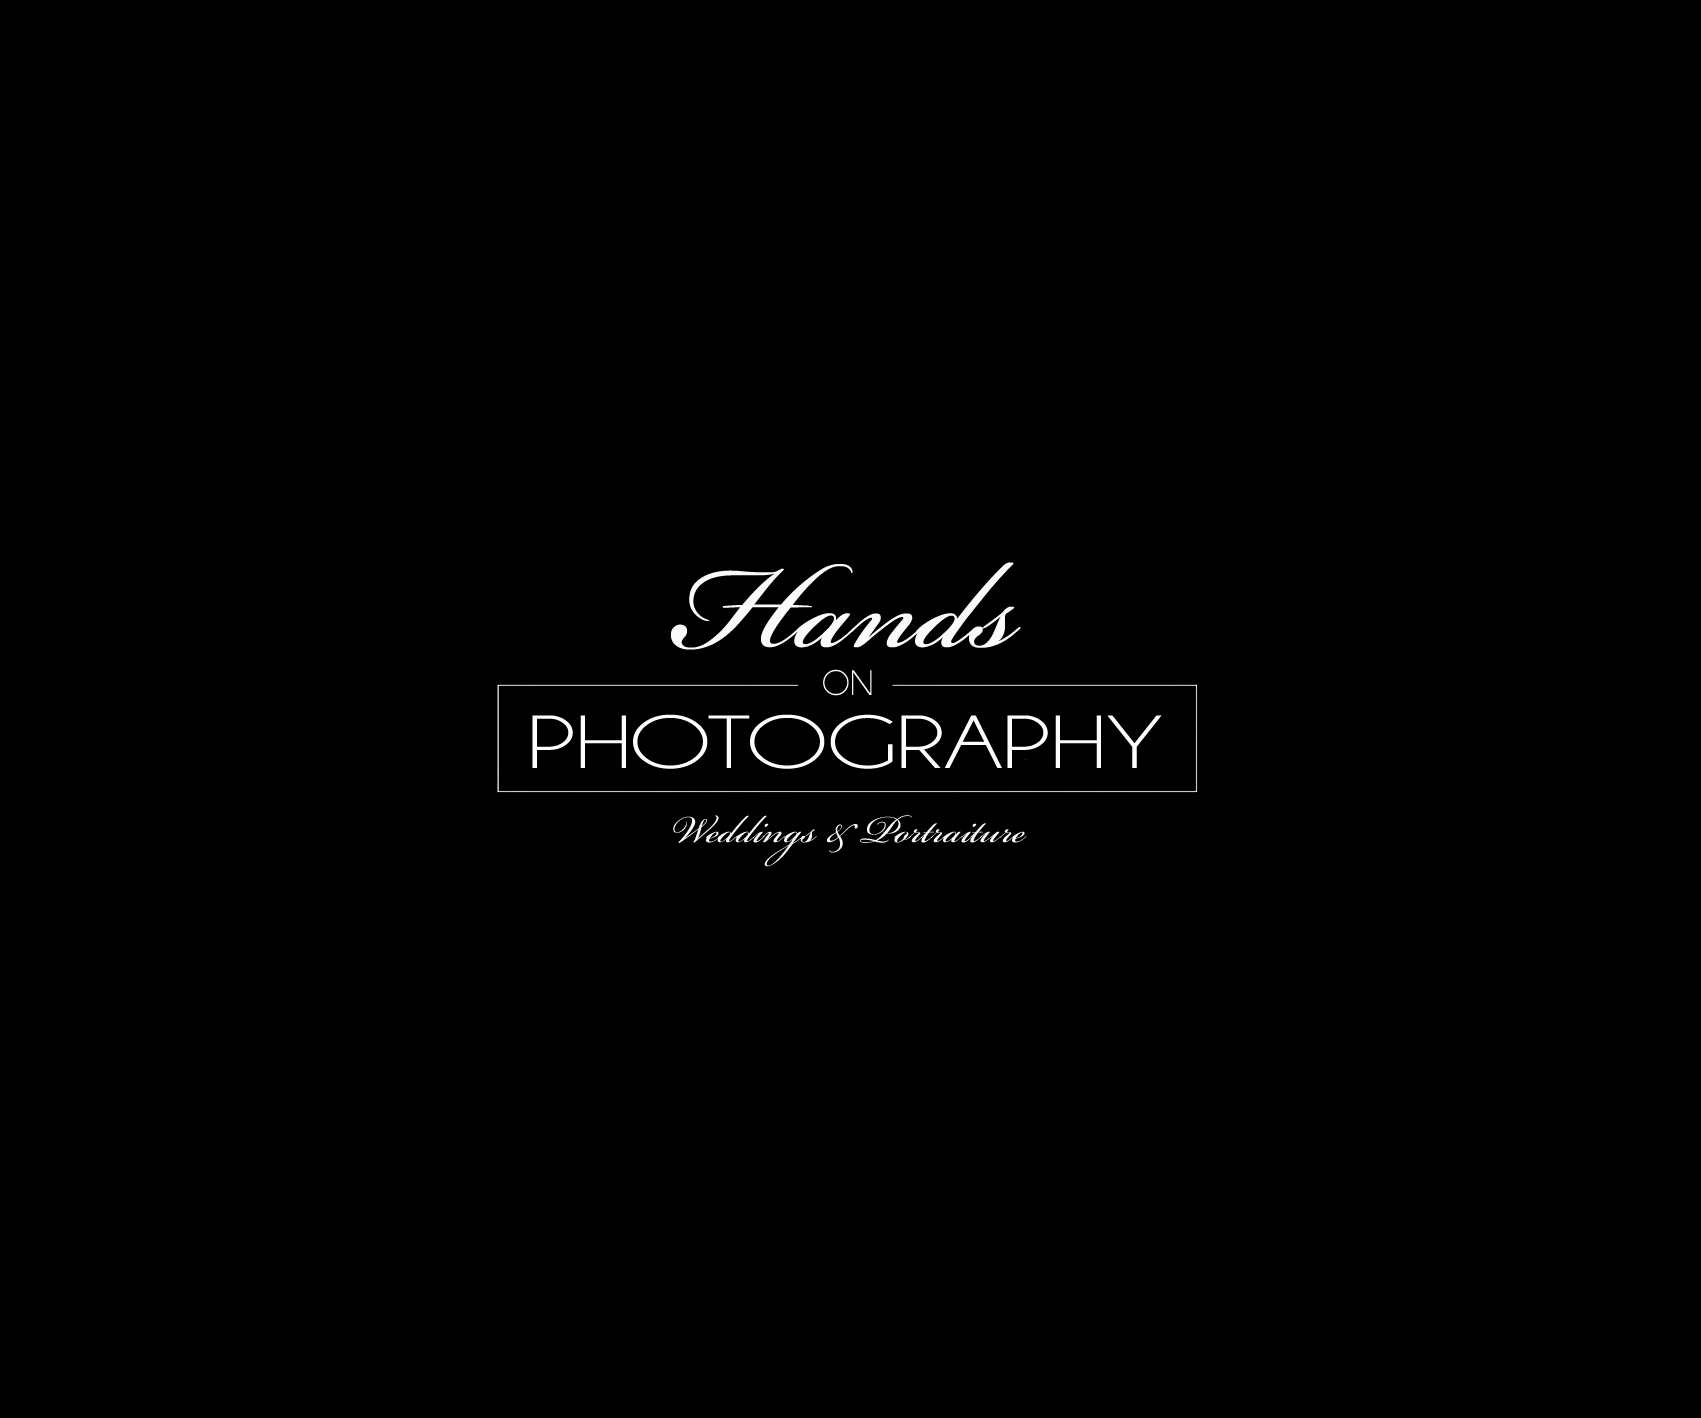 Paul Hands, Wedding Photographer, Burbage, Hinckley, Leicestershire, Midlands, UK, Europe